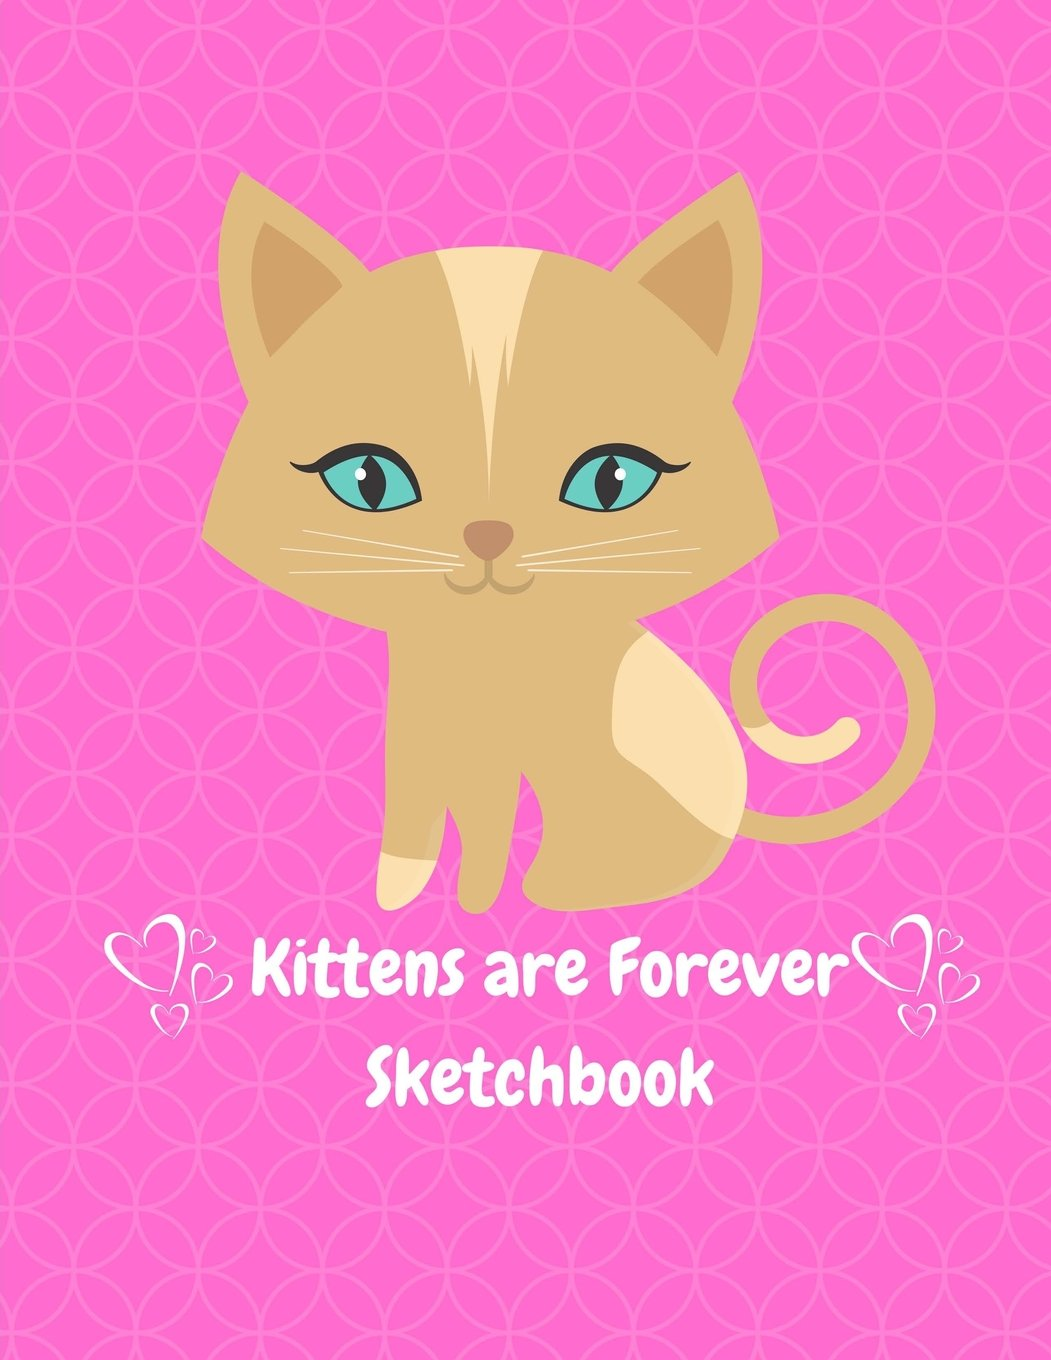 Read Online Kittens Are Forever Sketchbook:  8.5 x 11 size Sketchbook Journal White Unruled Drawing Paper 120 Pages, Durable Soft Cover  For Artists and Students PDF